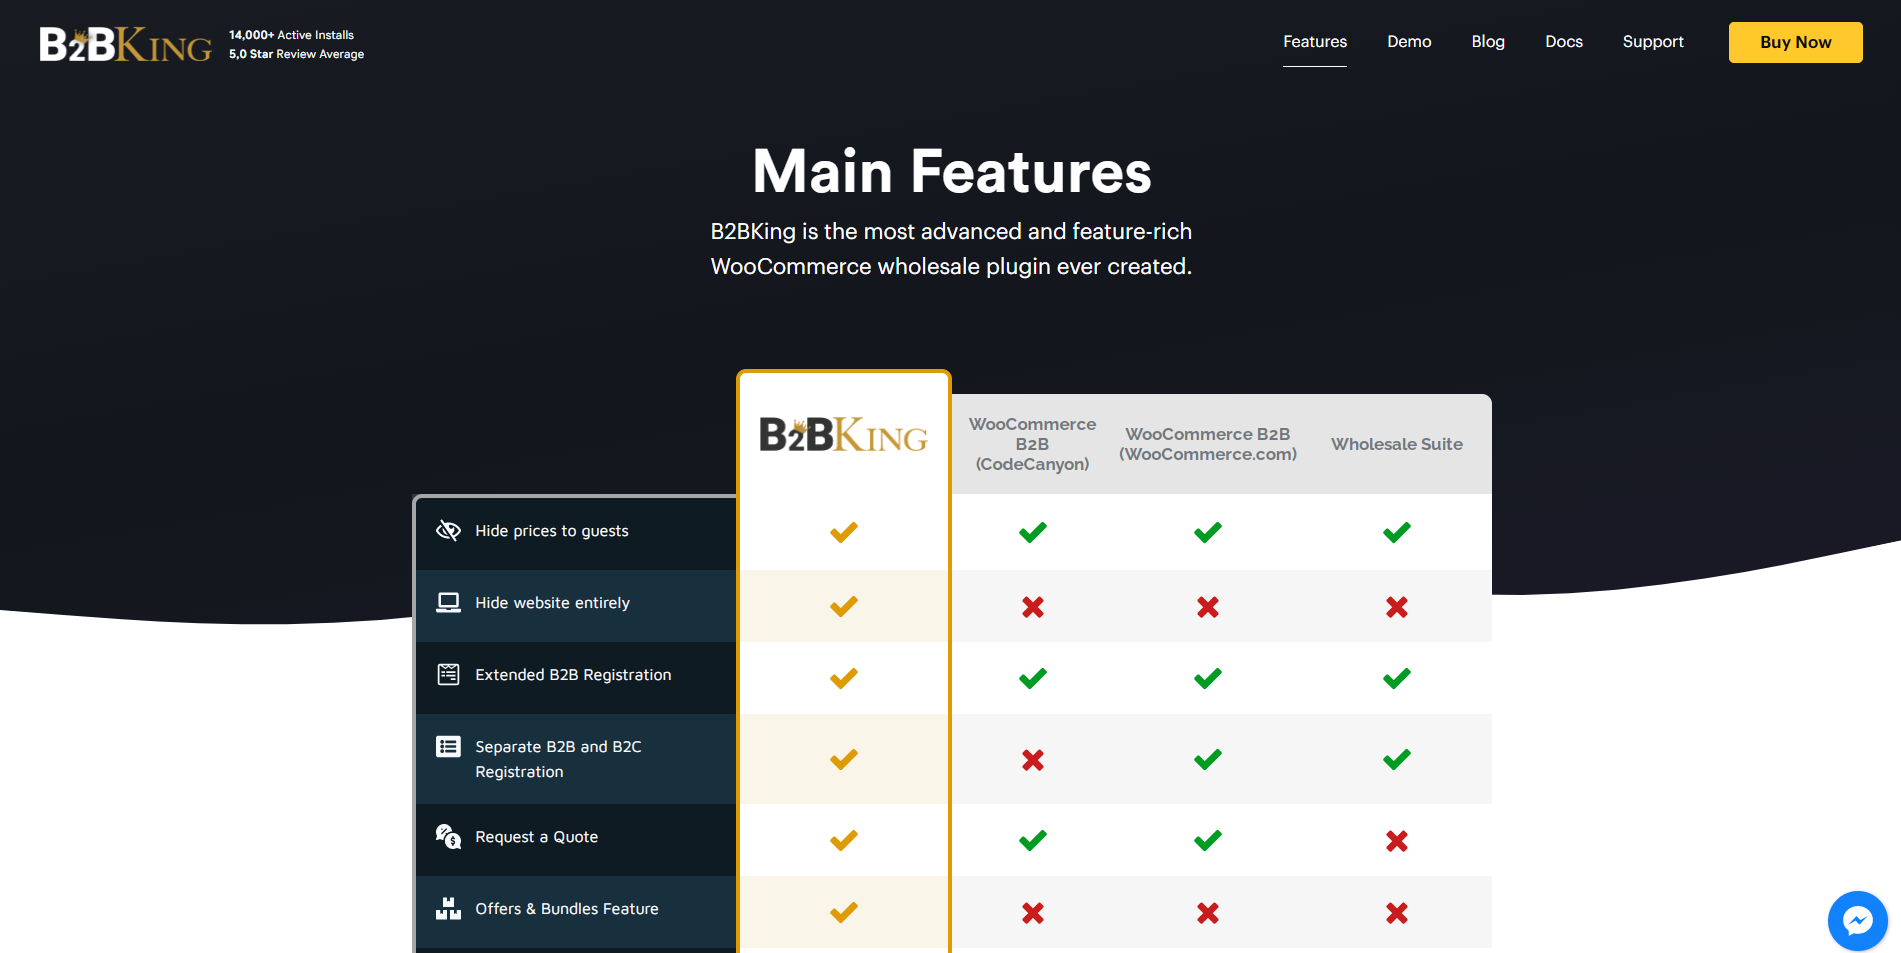 B2BKing pro version features